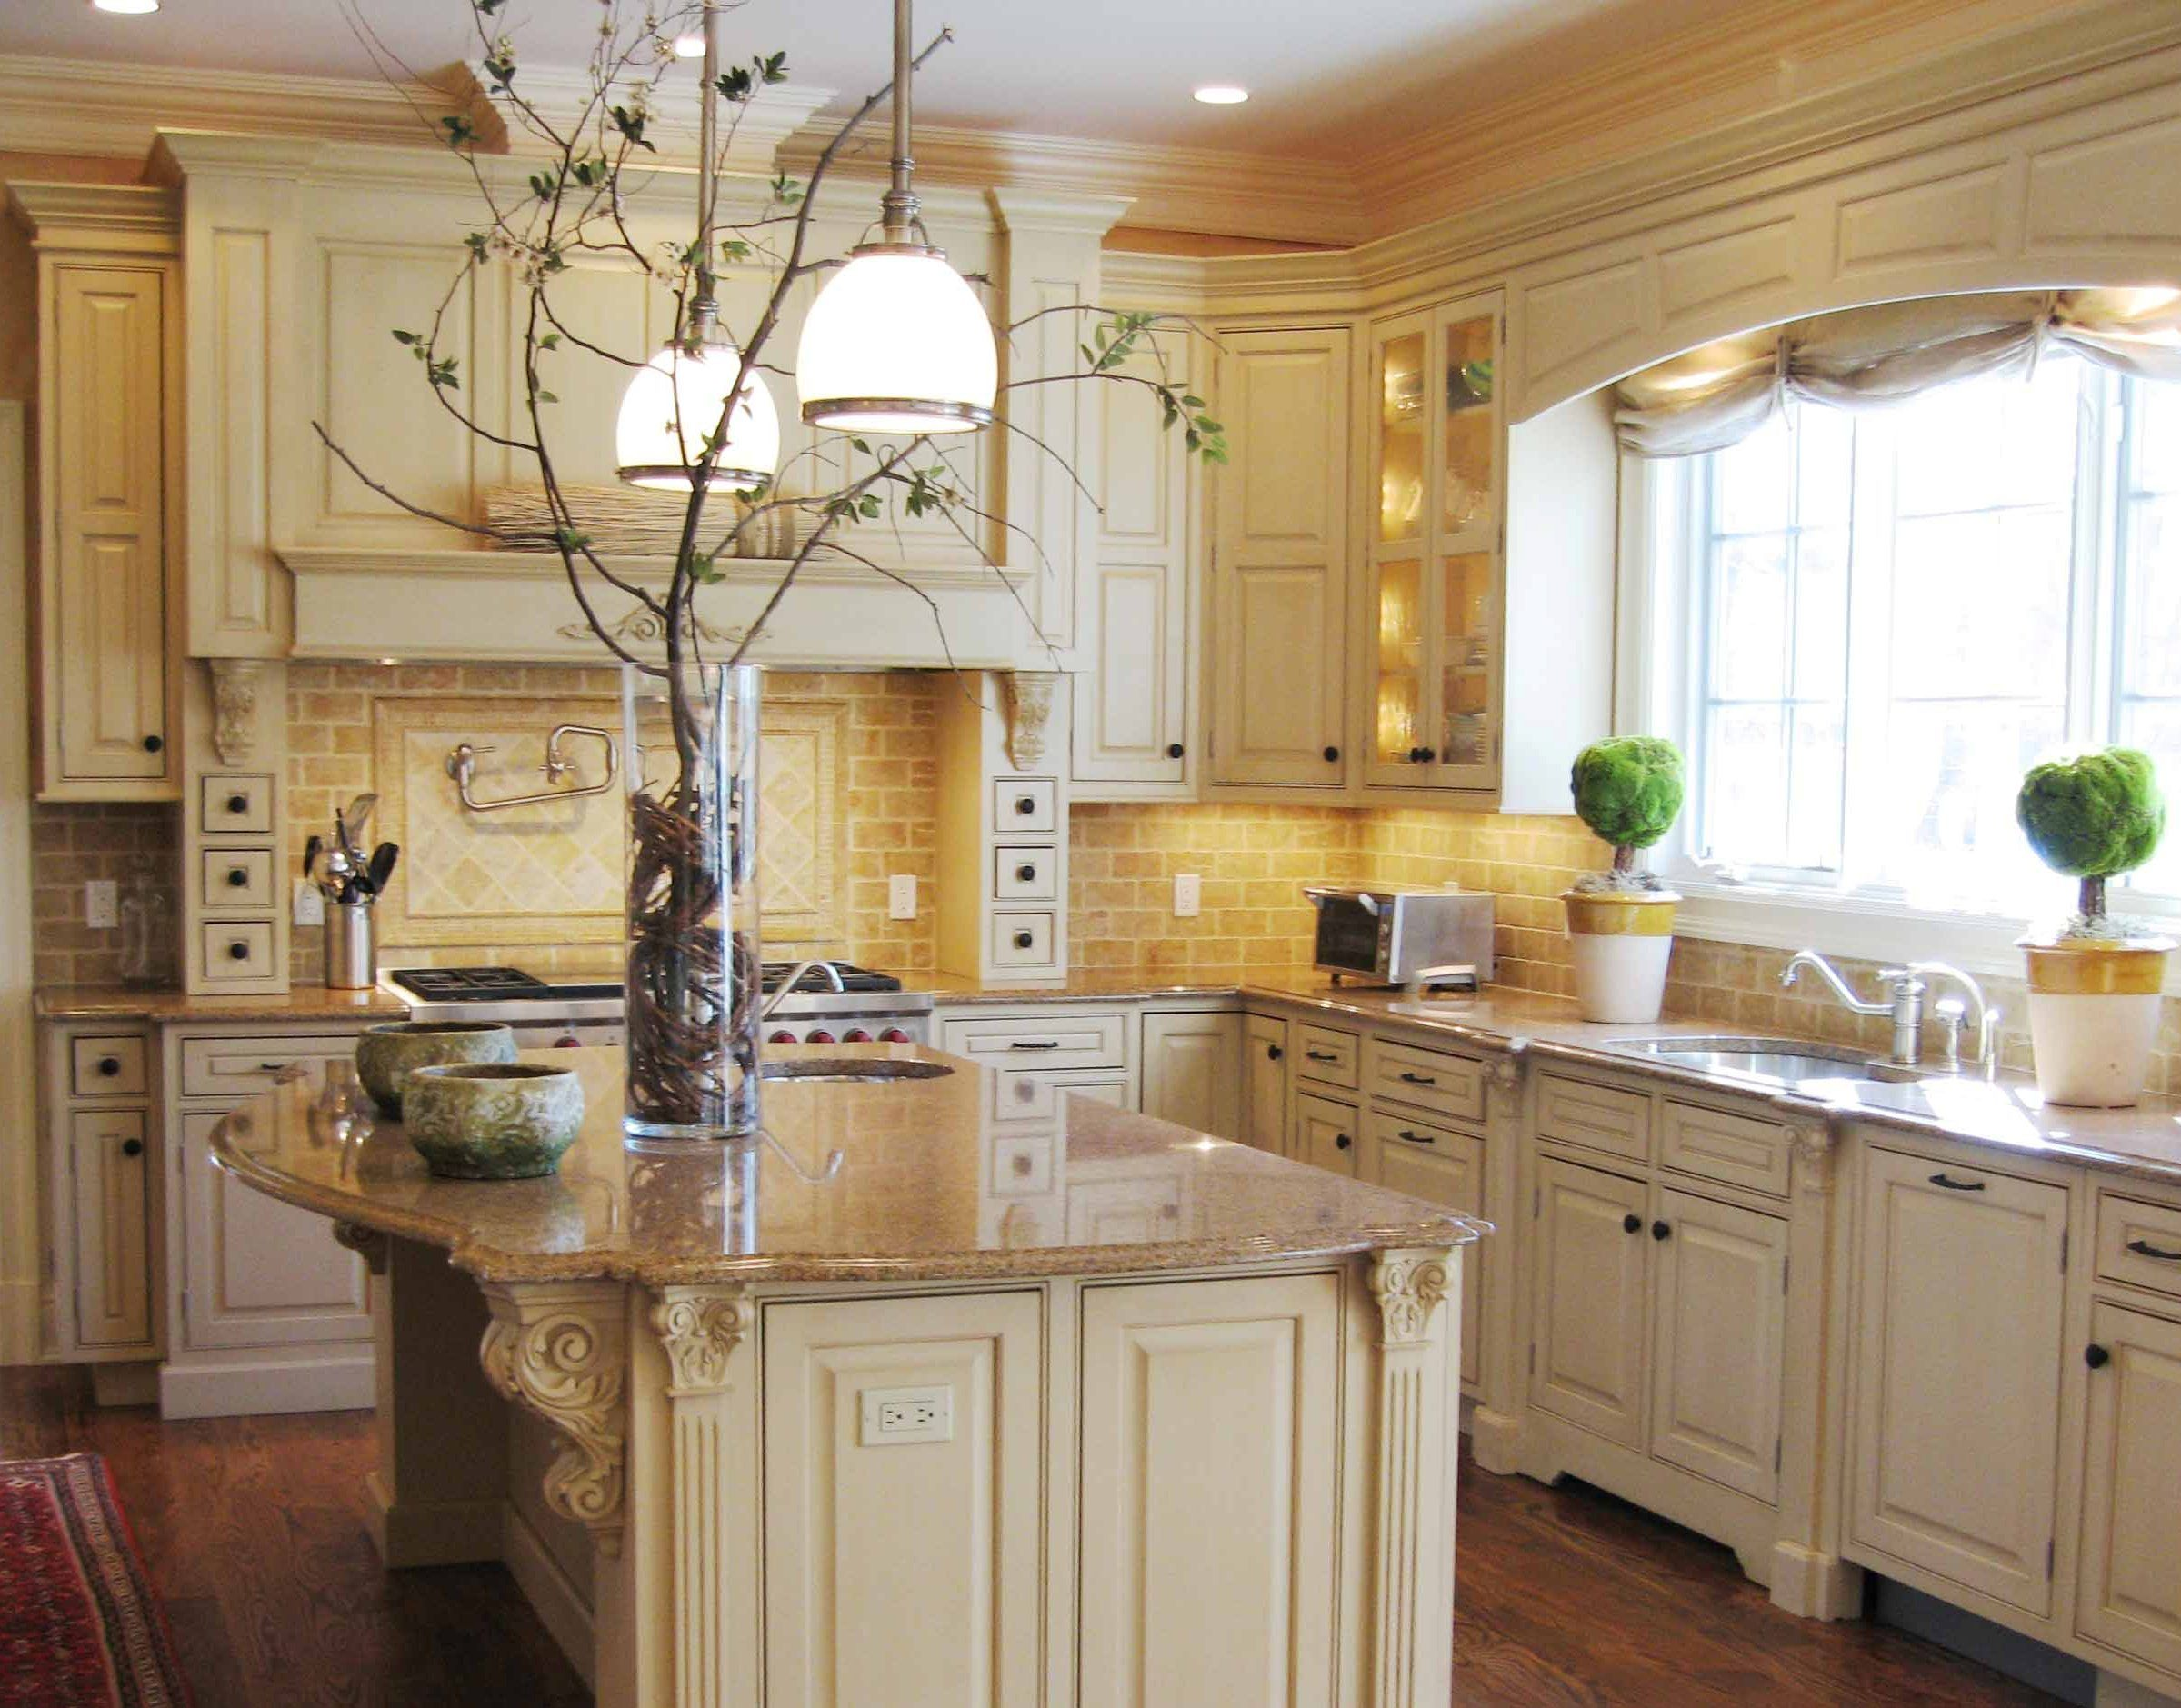 Alluring Tuscan Kitchen Design Ideas With A Warm Traditional Feel Adorable Counter Kitchen Design Inspiration